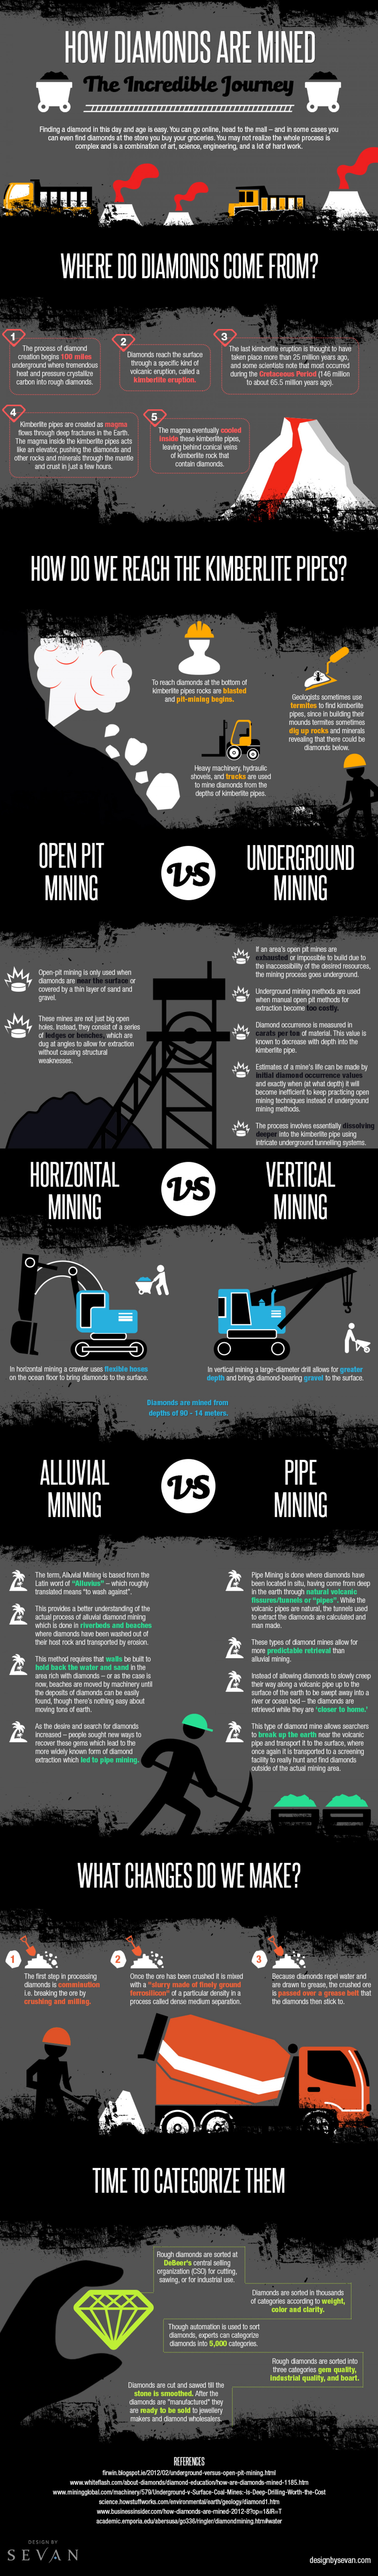 How Diamonds are Mined: The Incredible Journey Infographic